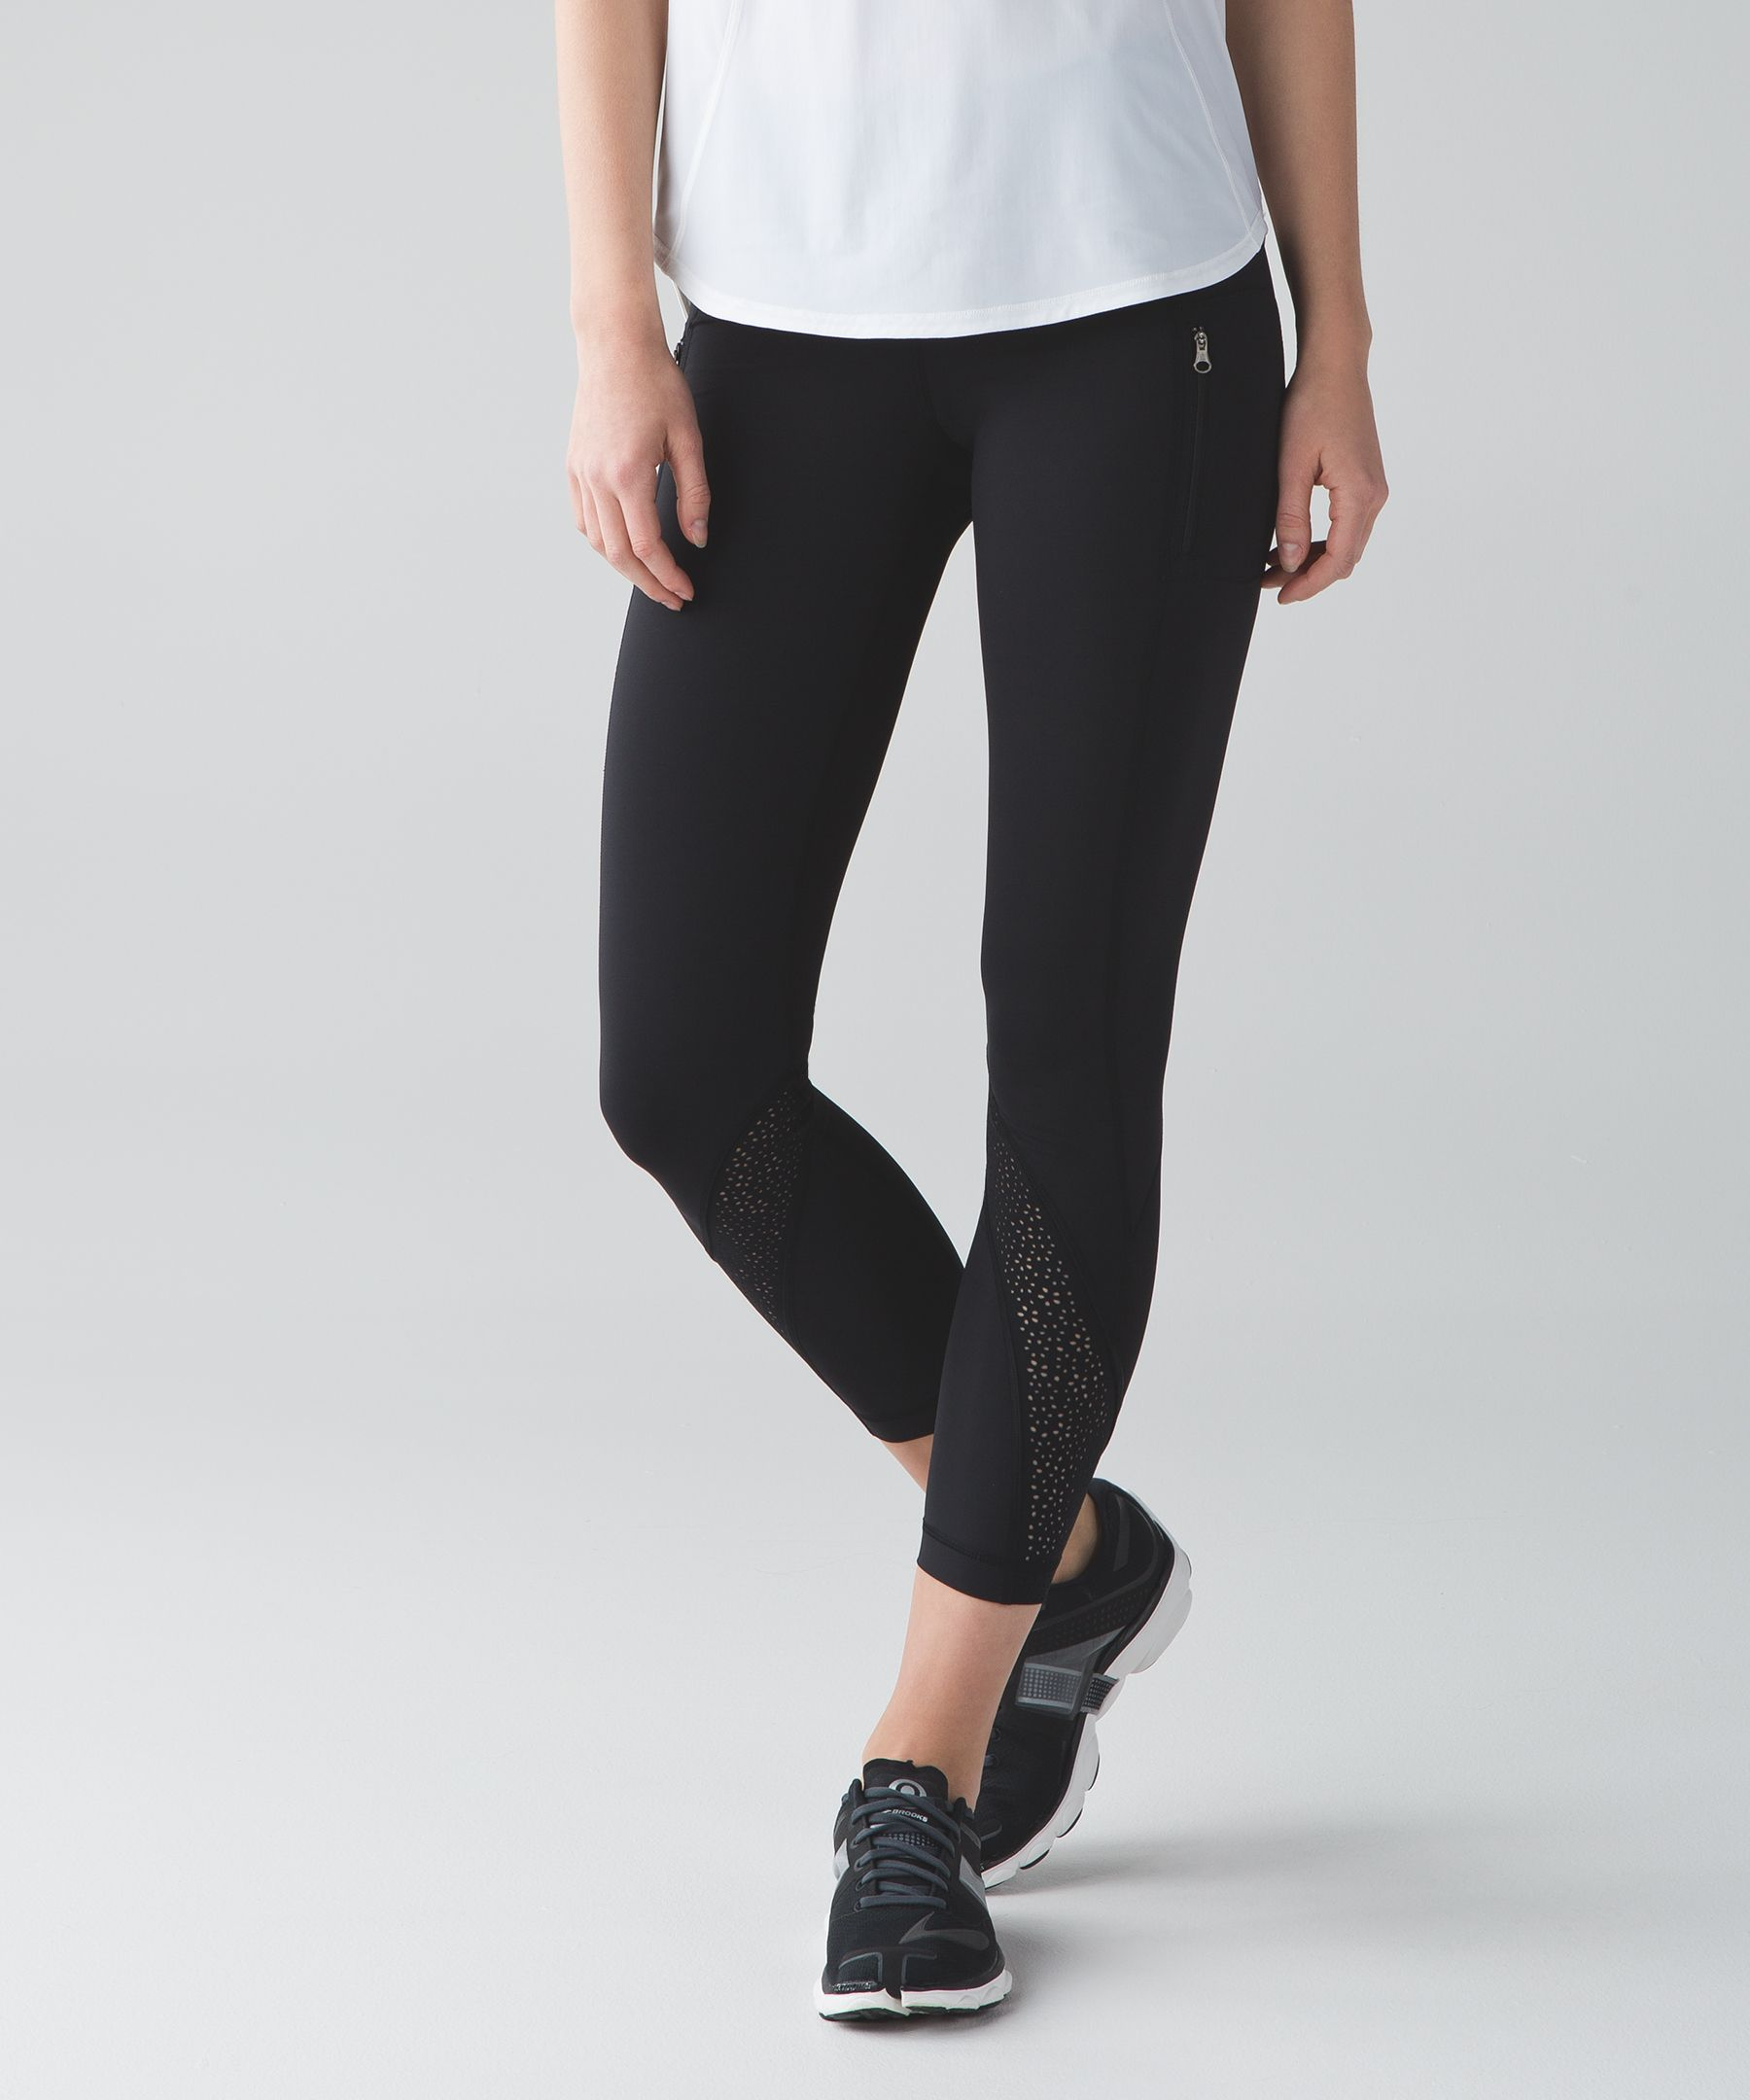 2cb1c40ac6 inspire tight ii *laser cut | women's pants | lululemon athletica